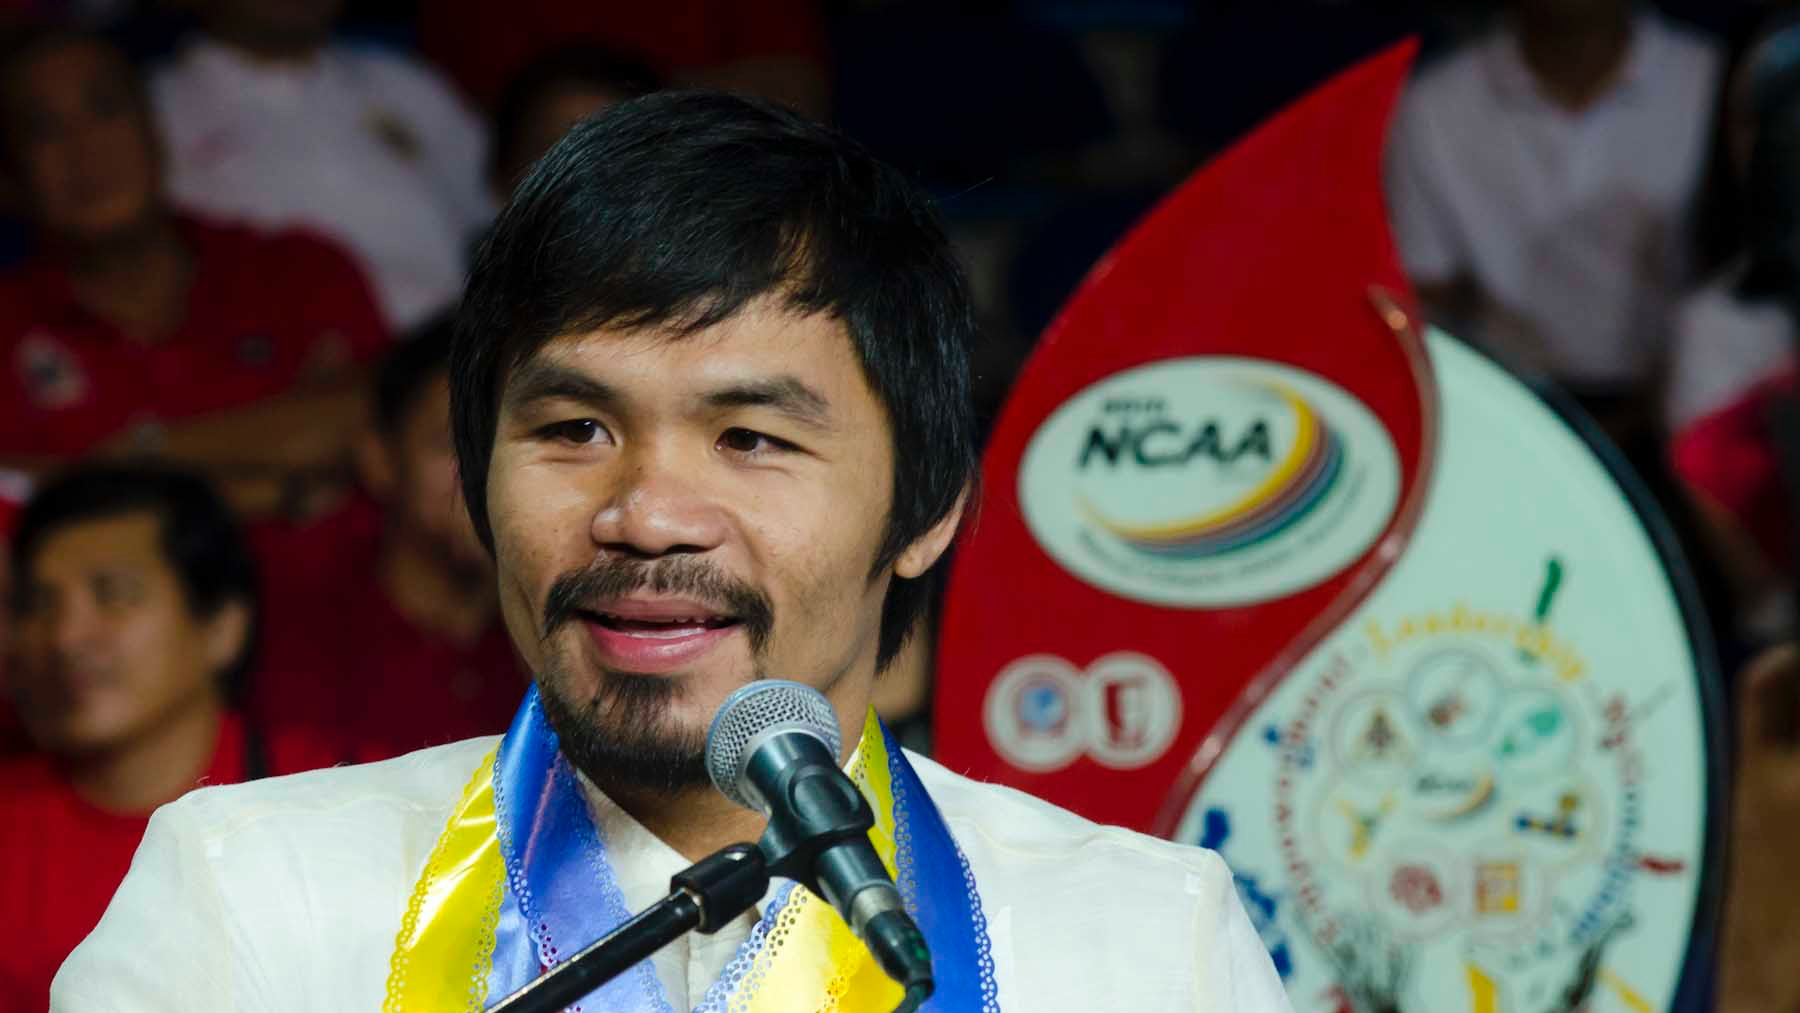 manny pacquiao politician